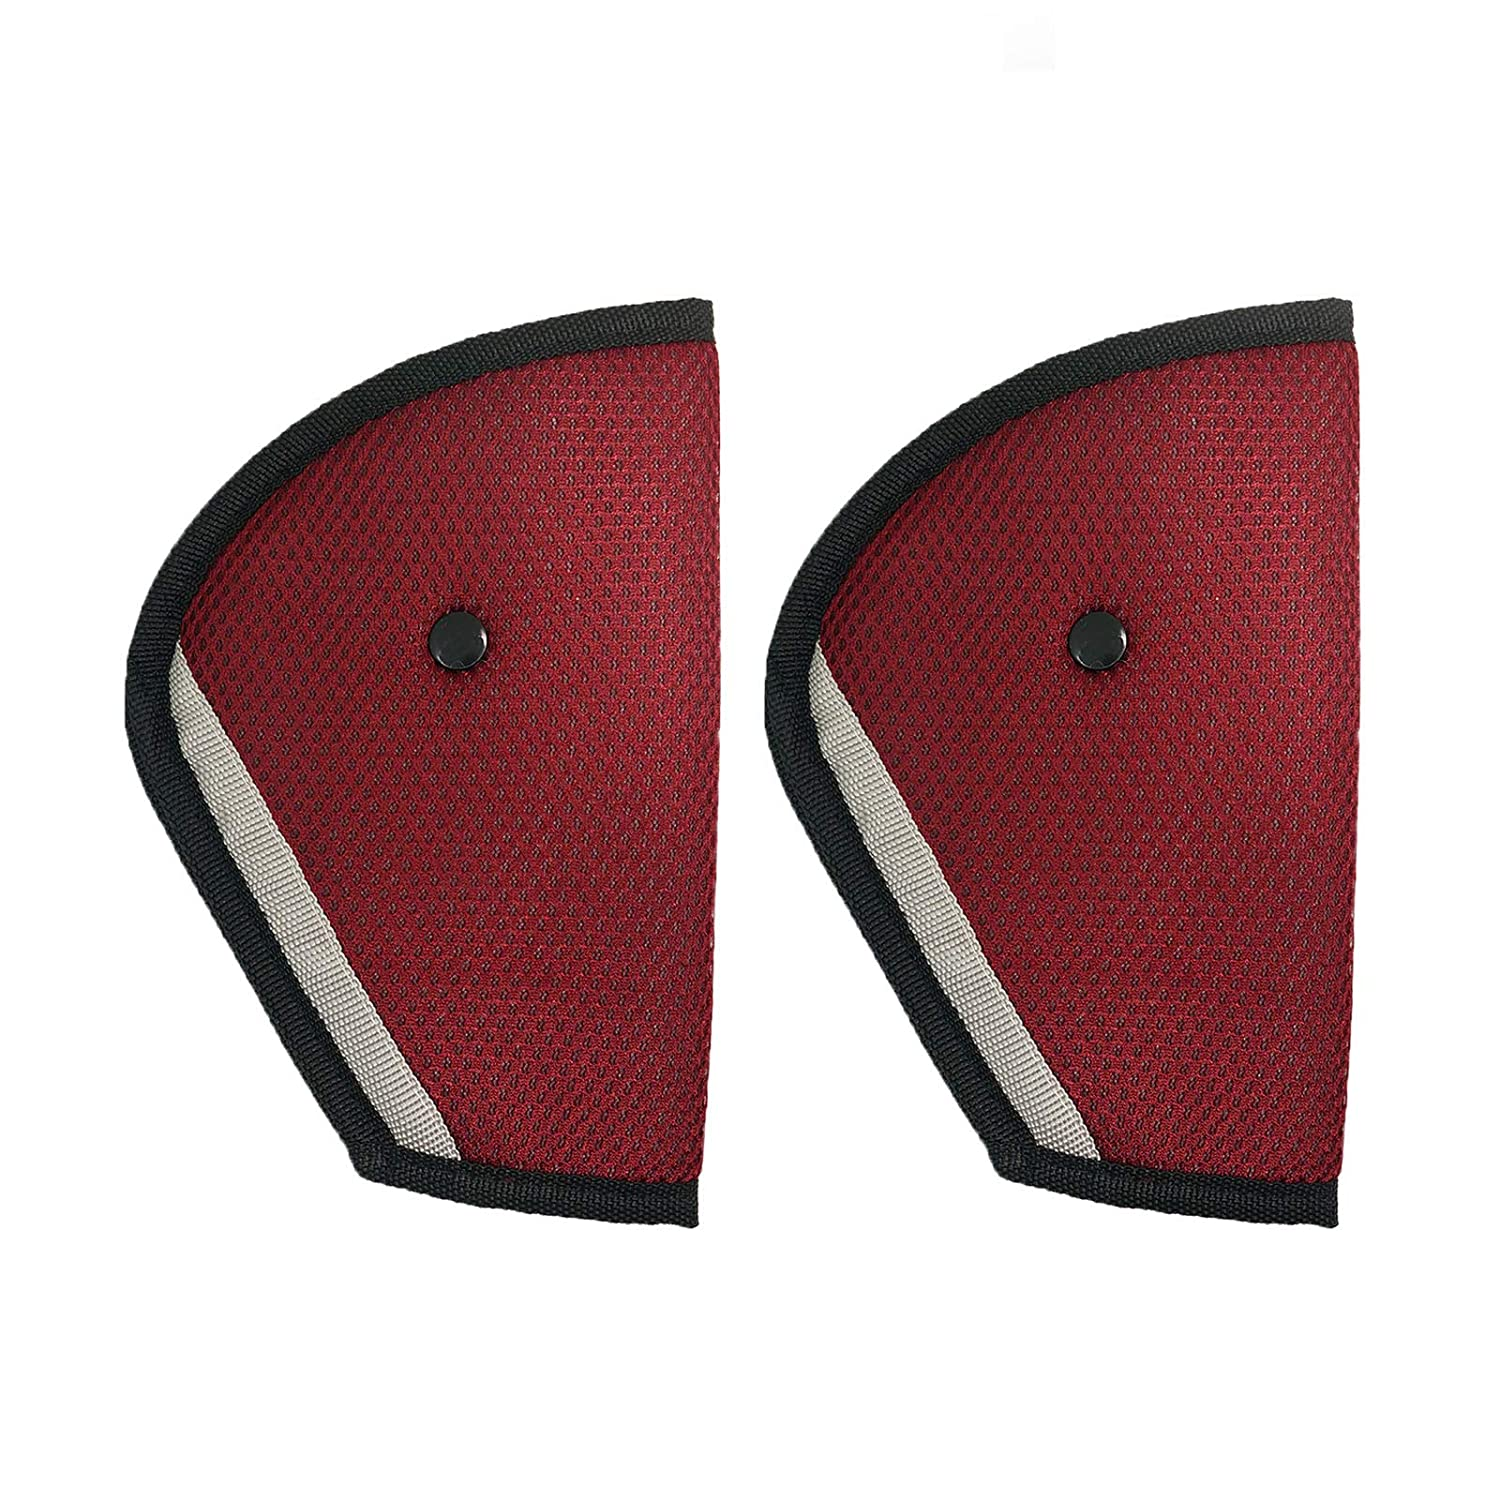 Red Wittyware 2 pcs Seat Belt Adjuster for Children Kids Adults Safety Belt Cover Strap Shoulder Belt Pad Clips